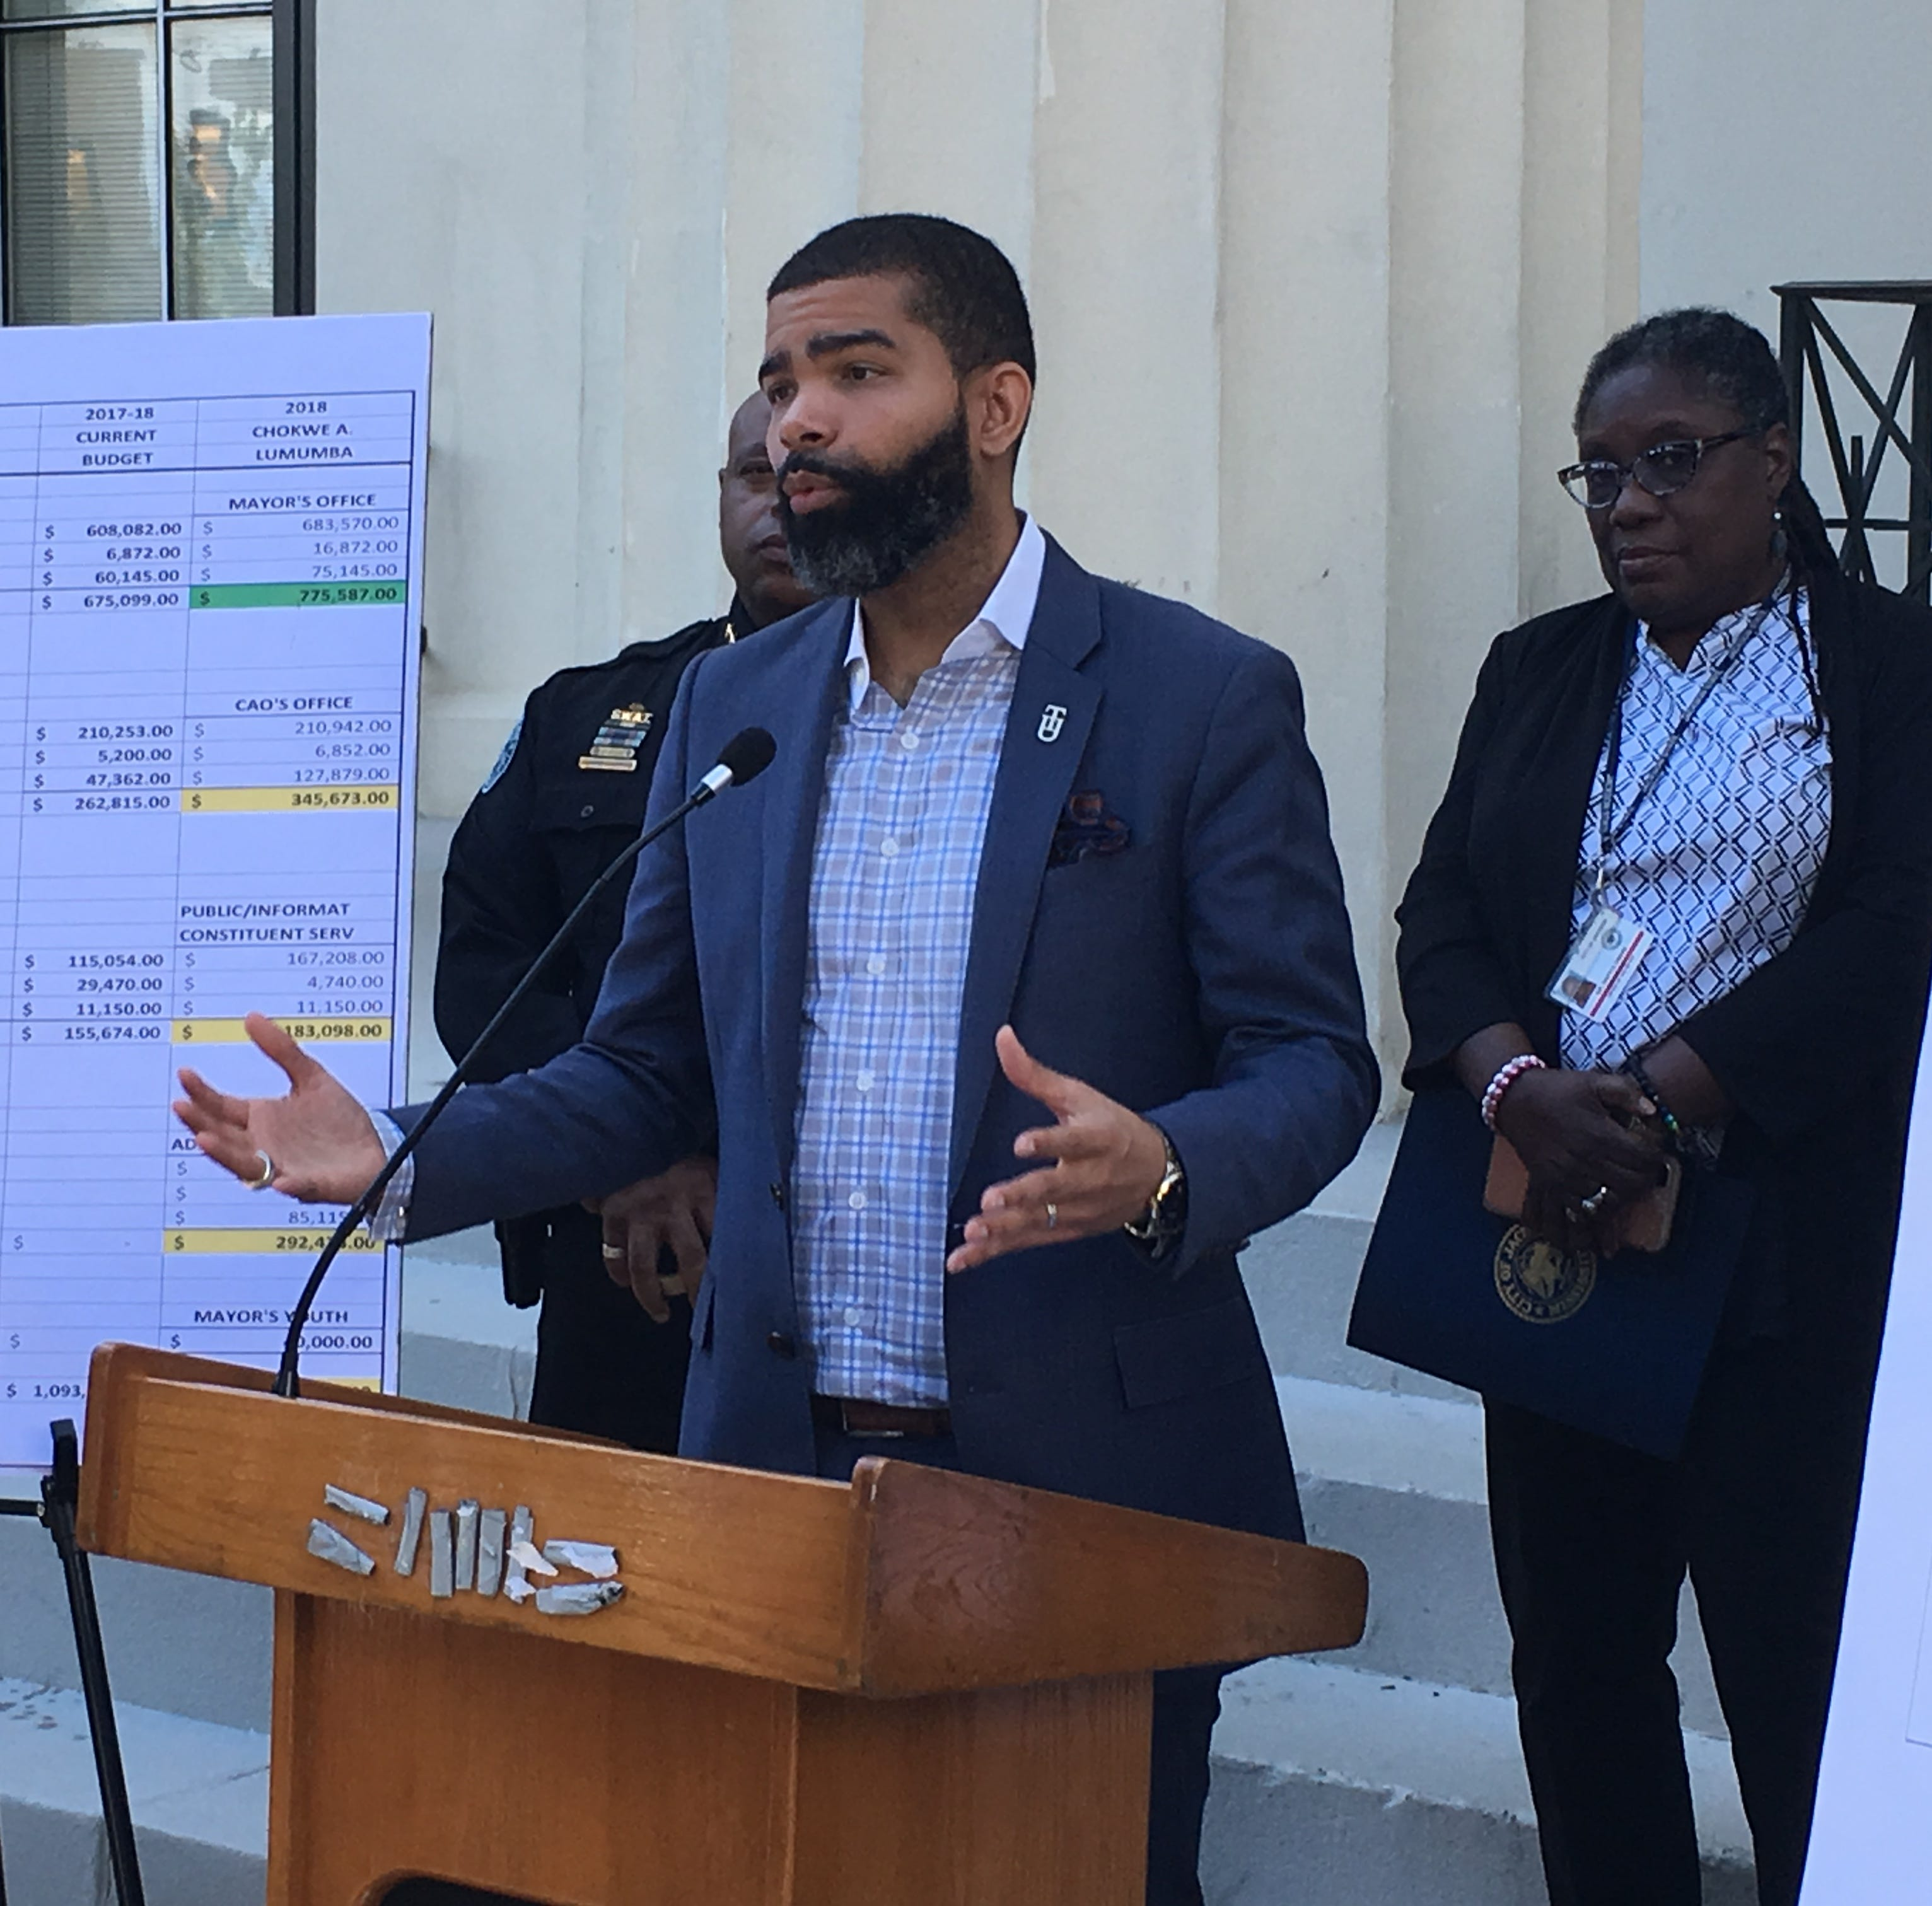 Jackson Mayor Chokwe Antar Lumumba highlights the administration's proposed budget for the next fiscal year at a press conference on Aug. 31, 2018.